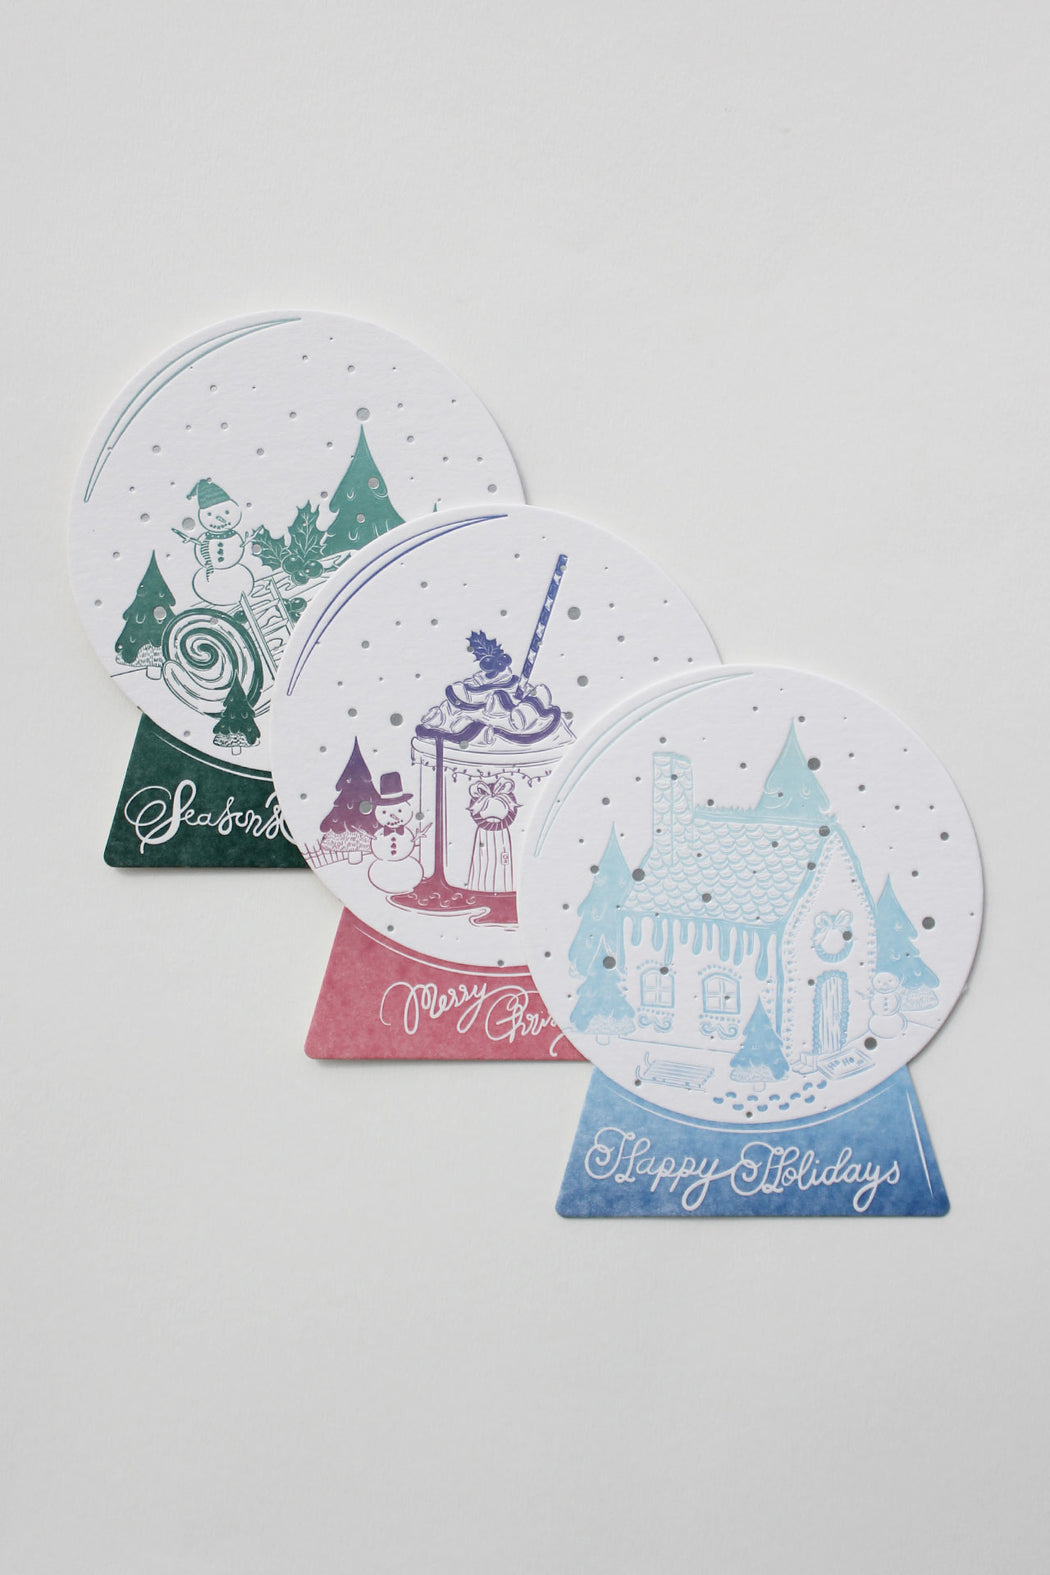 Whimsical Christmas Greeting Cards (Trio)